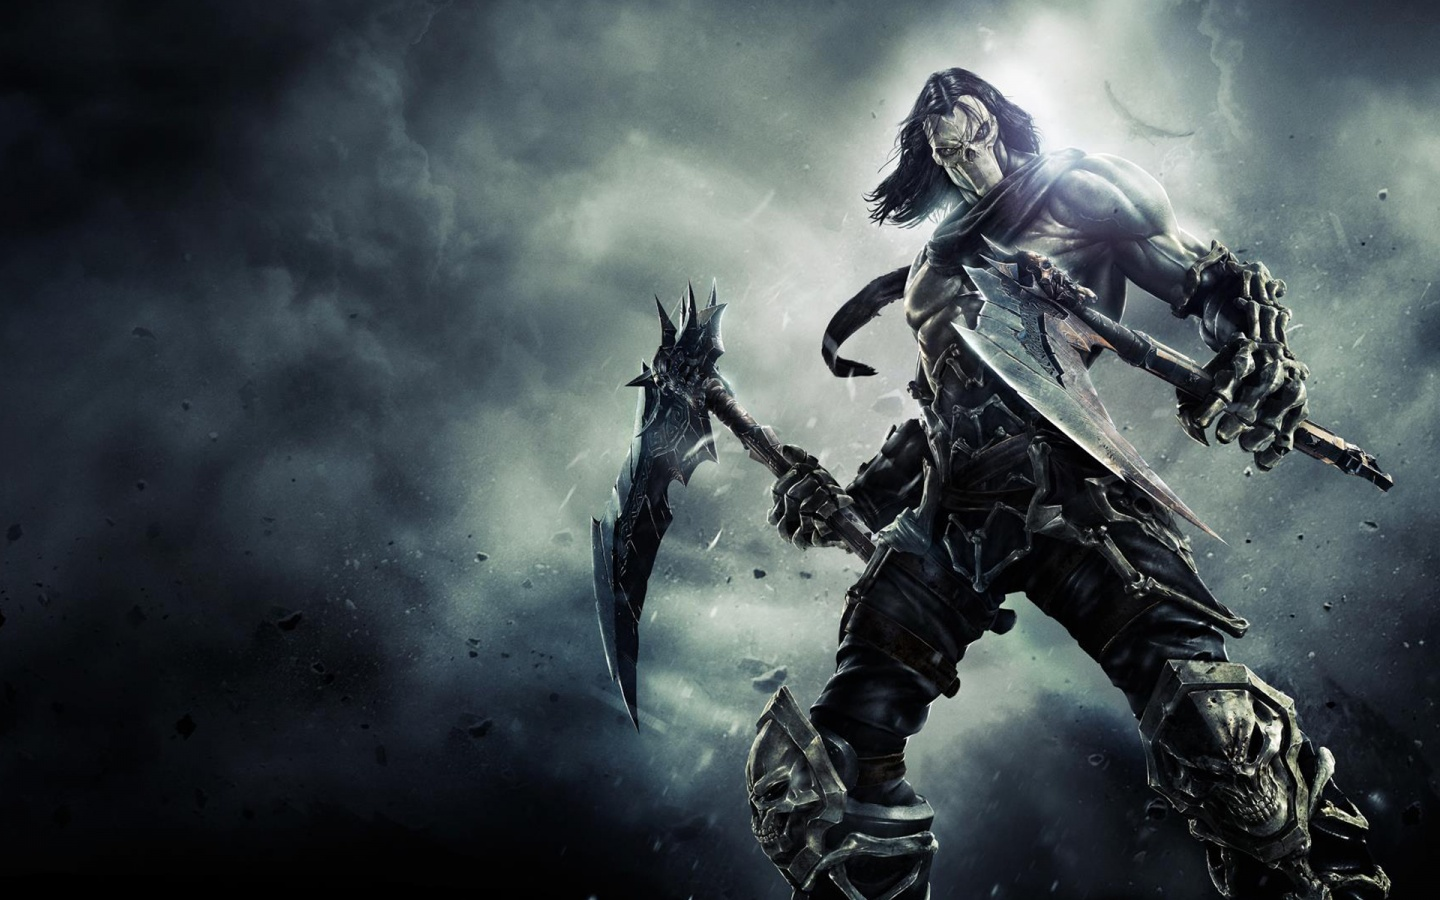 Death Darksiders 2 Game Wallpapers HD Wallpapers 1440x900